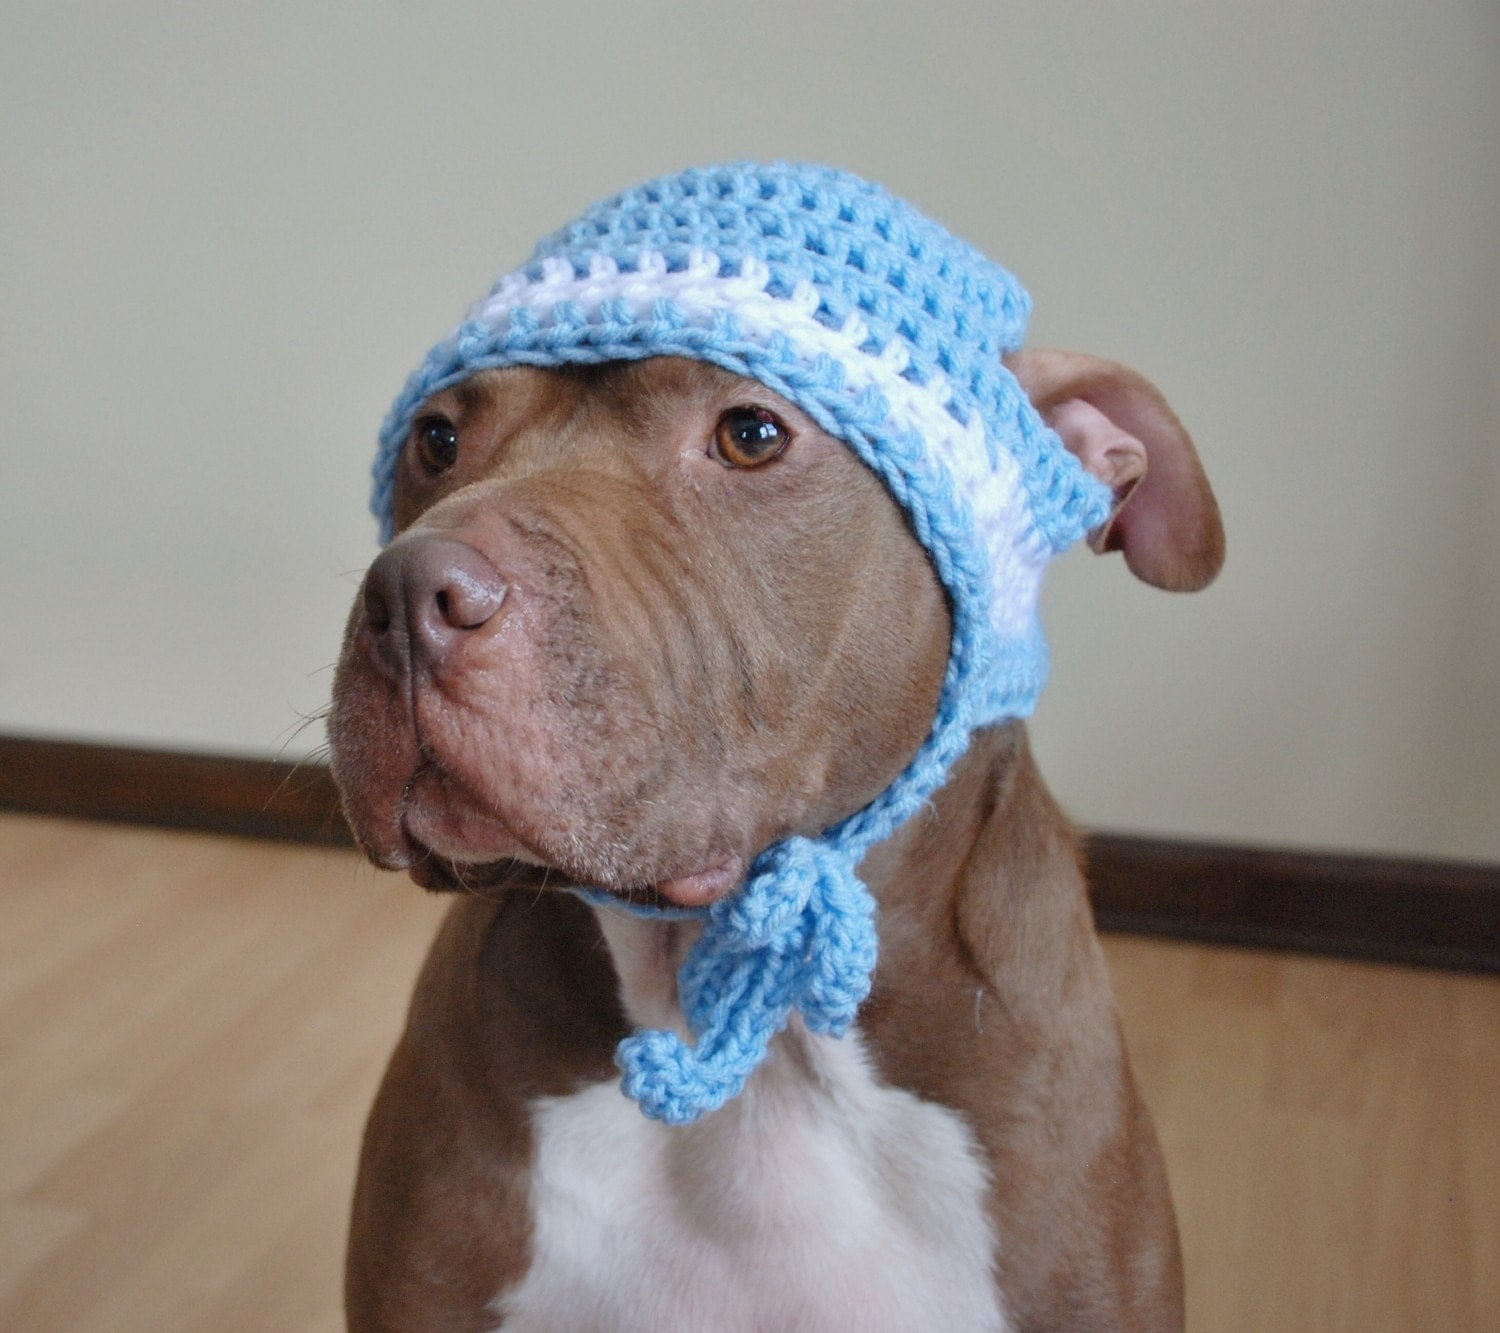 Crochet Pattern For Dog Hat With Ear Holes : Dog Hat Large Crochet Blue and White by courtanai on Etsy